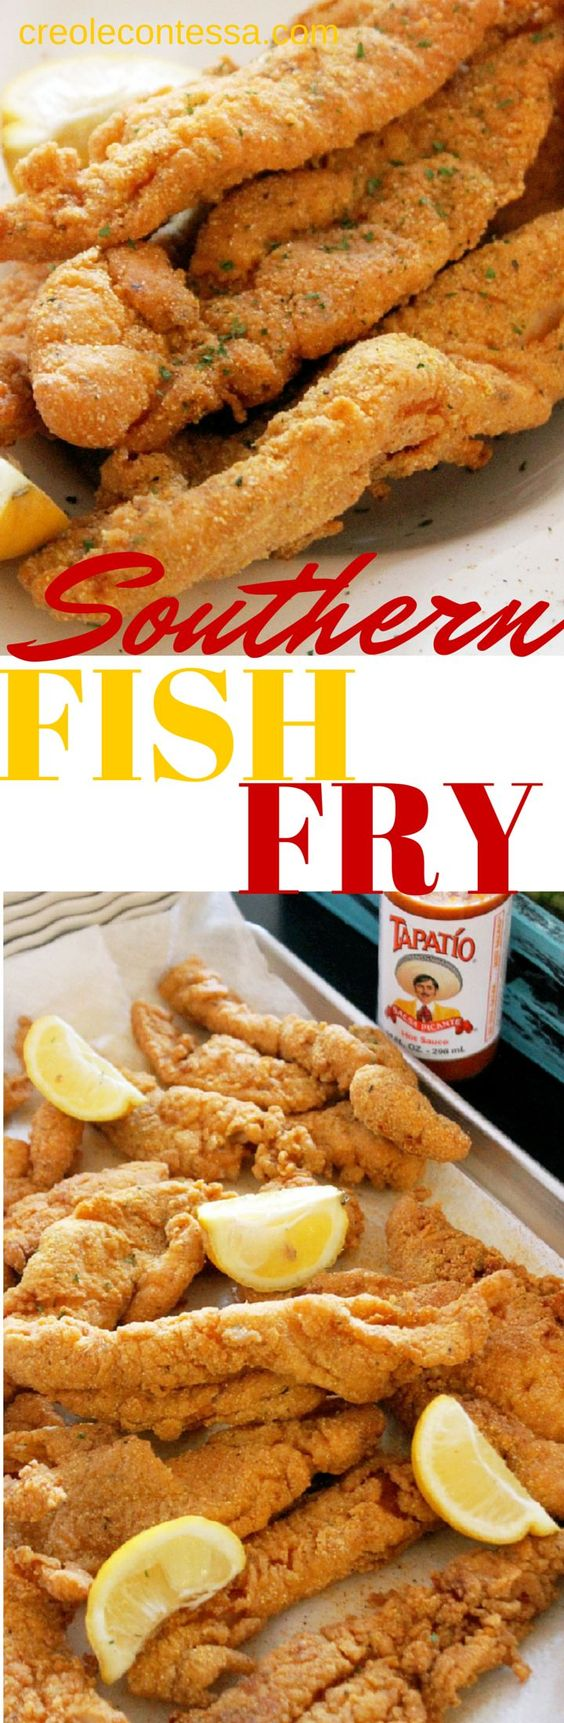 Southern fish fry recipe read more fish and entrees for Southern fish fry batter